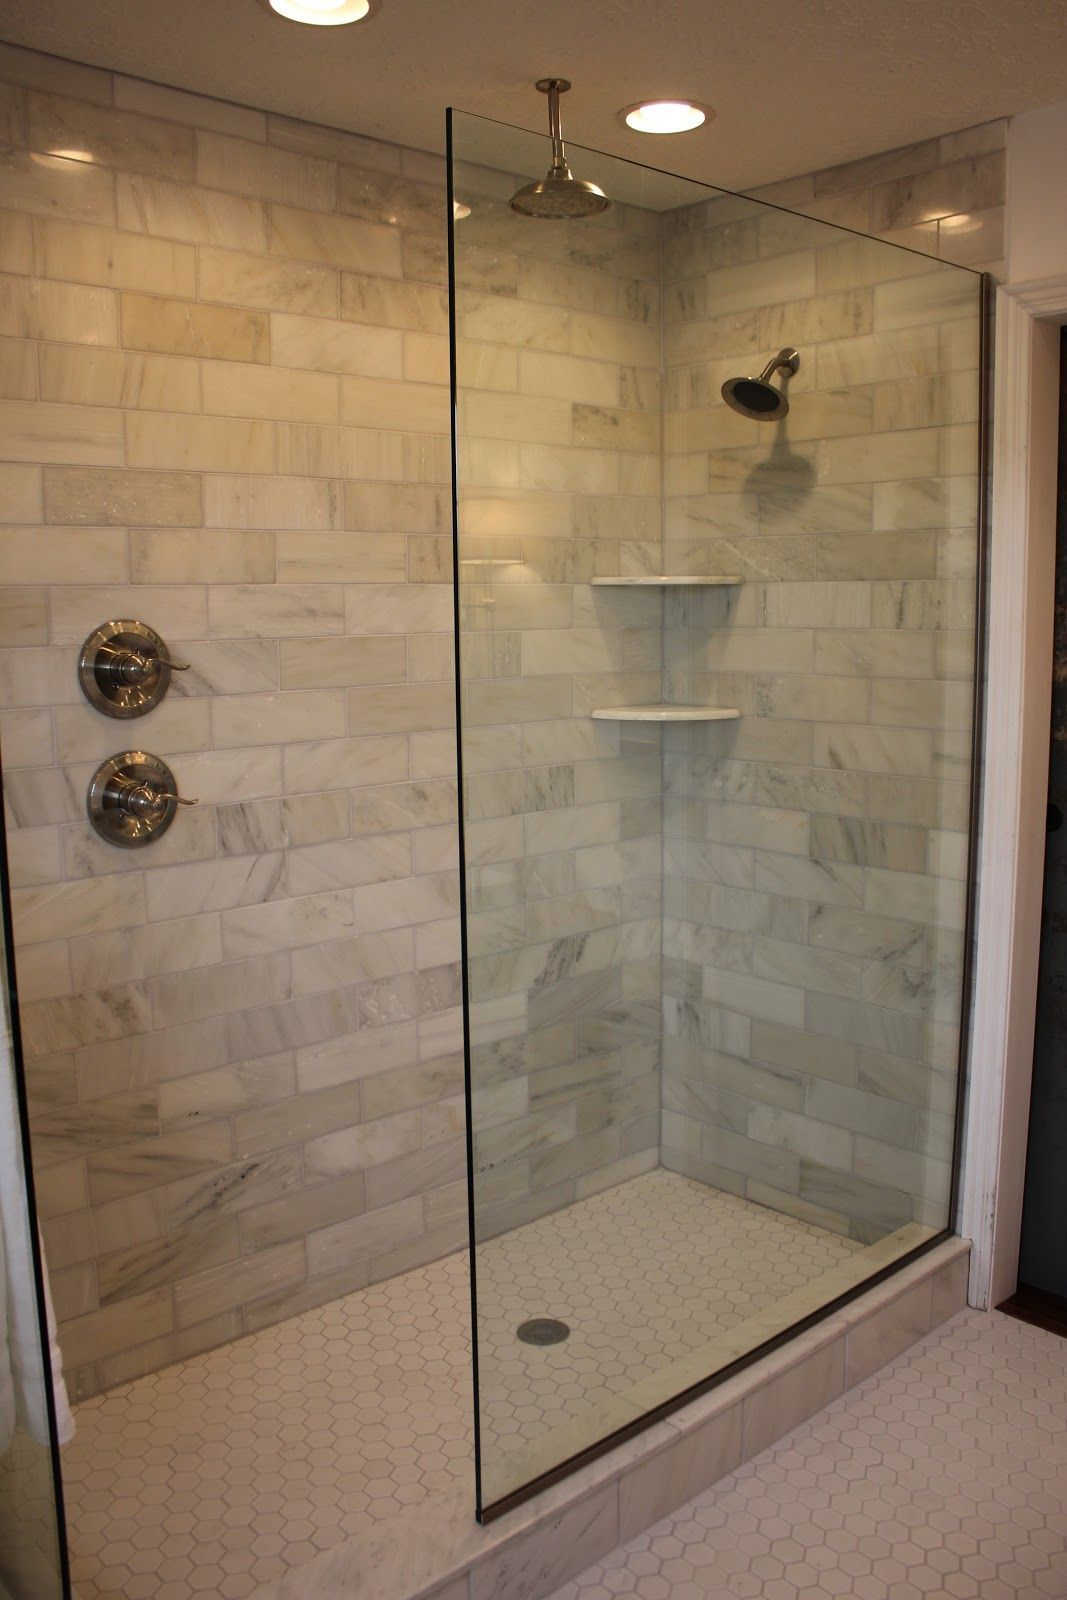 Secret Advice To Make An Outstanding Home Bathroom Remodel - Bathroom shower remodel on a budget